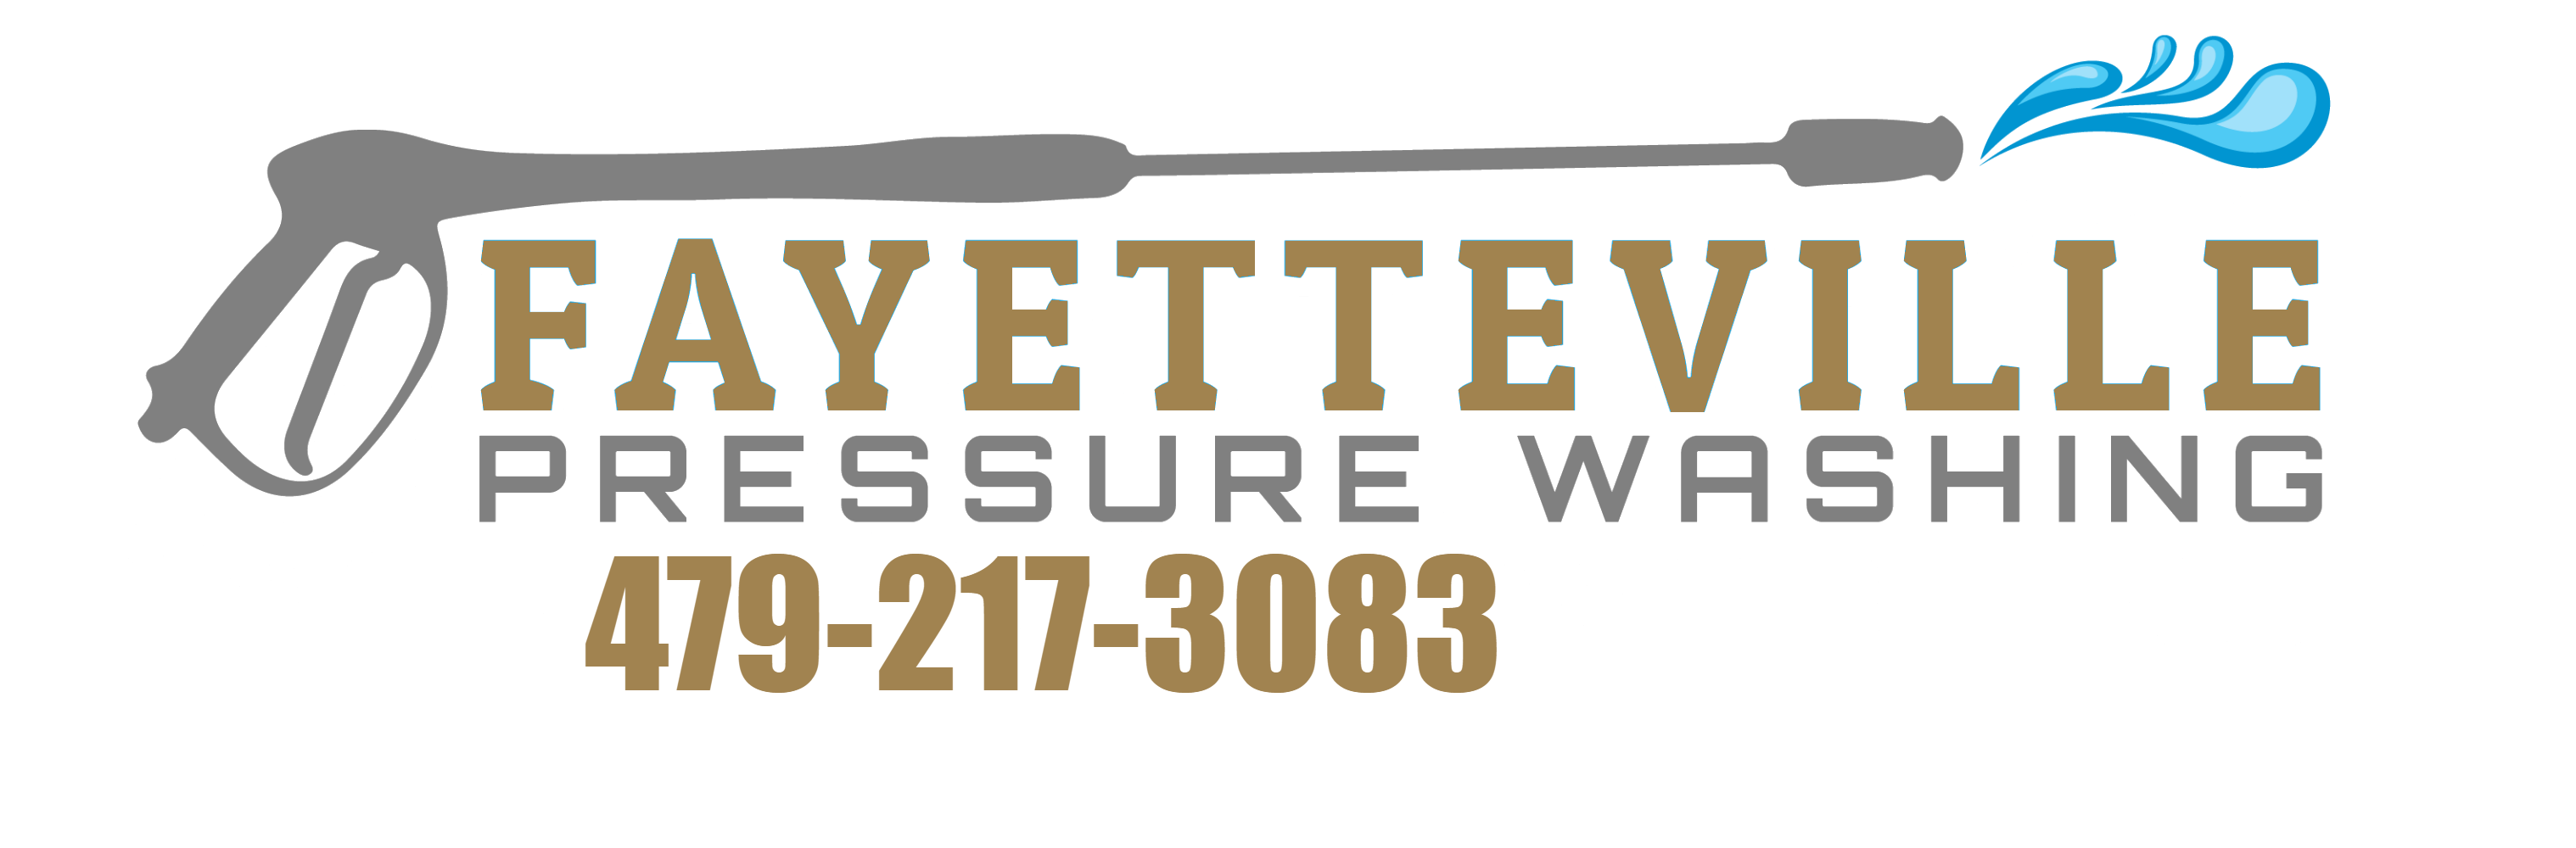 Fayetteville Pressure Washing